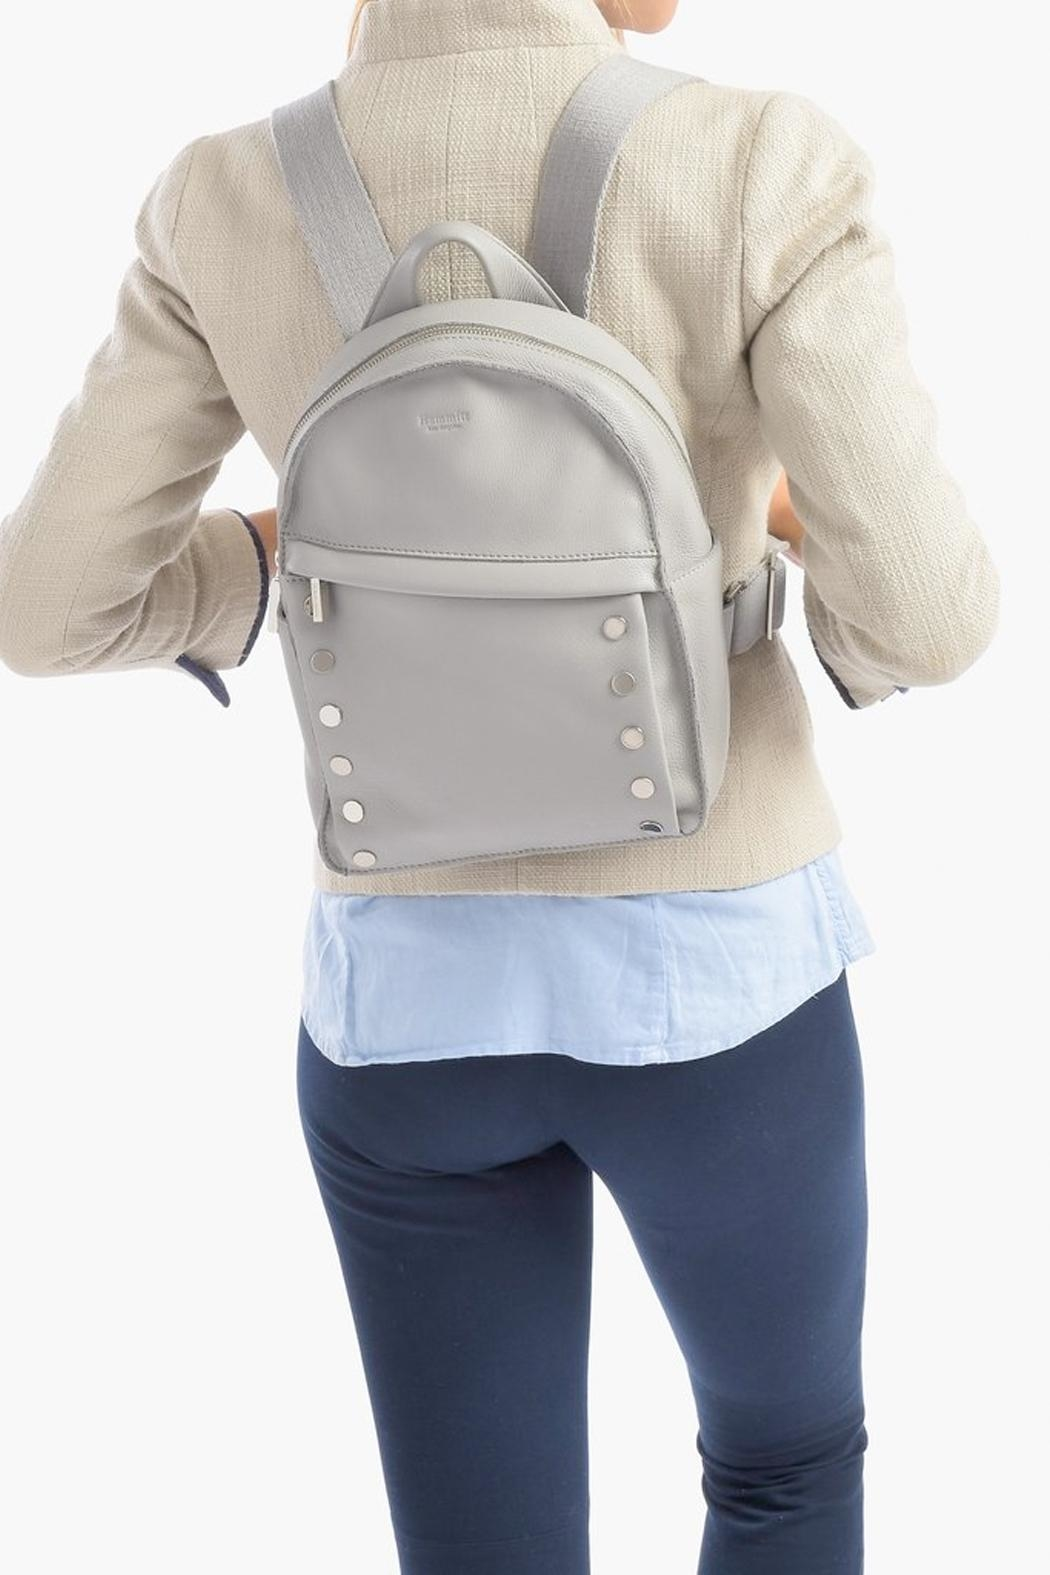 Hammitt Los Angeles Shane Leather Backpack - Side Cropped Image